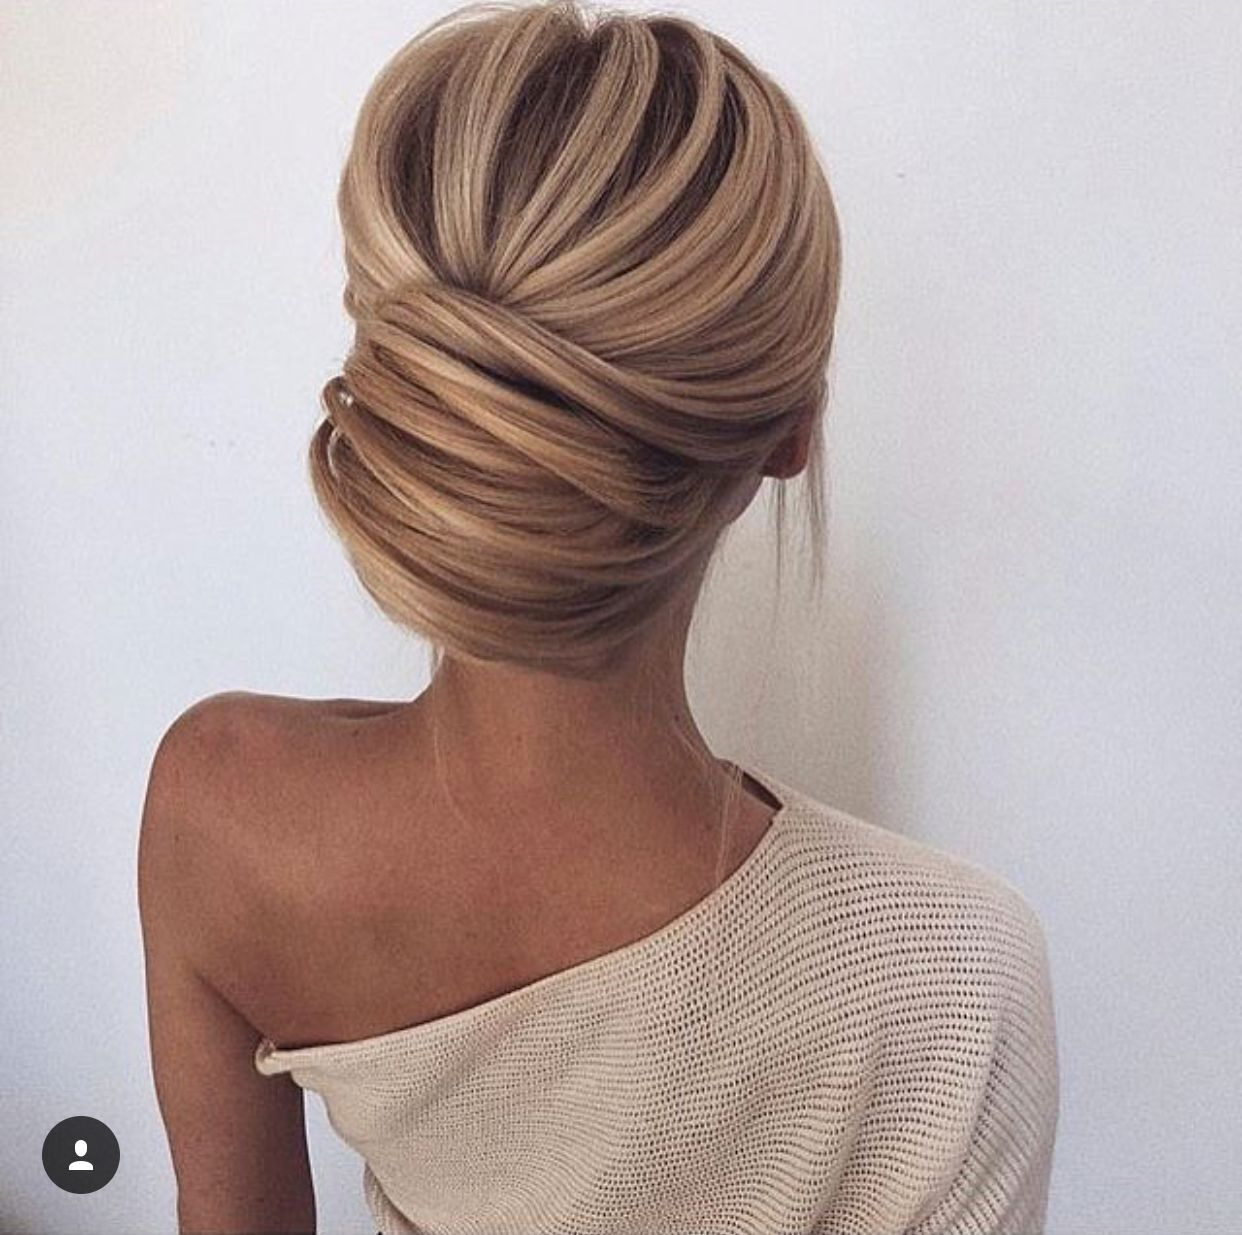 Haar Opsteken Hair Styles Long Hair Styles Hairstyles For Thin Hair